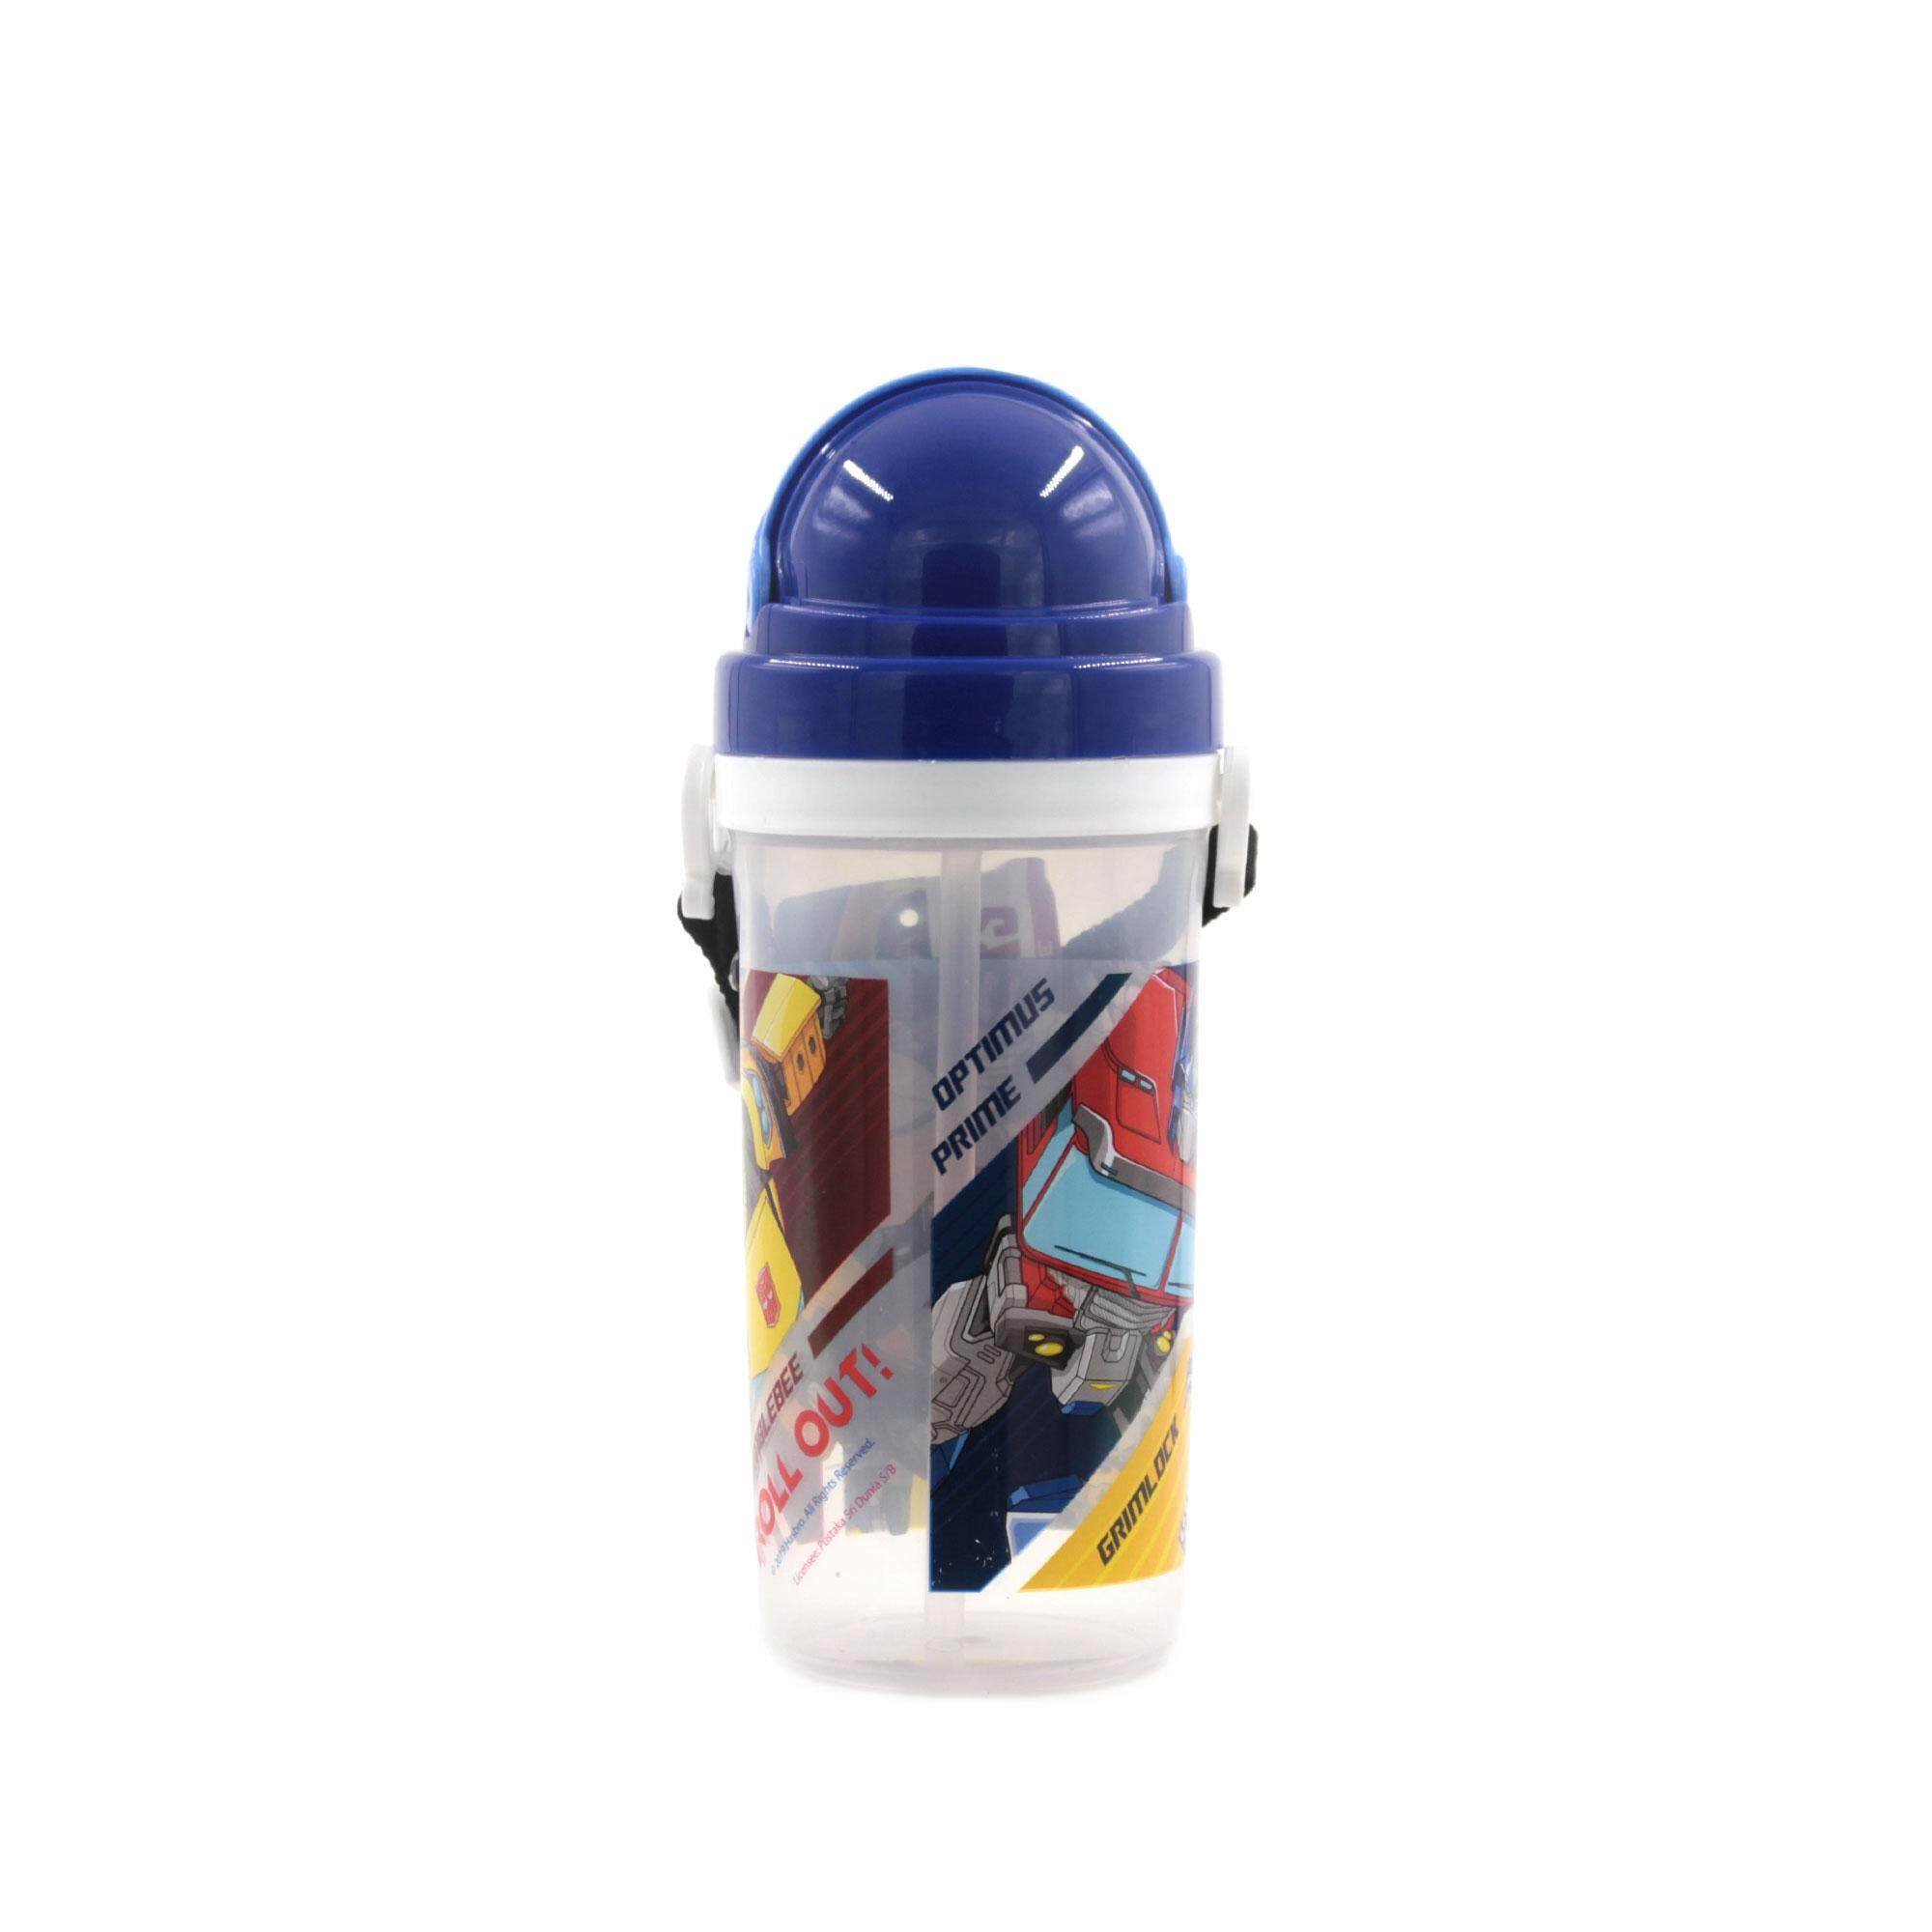 Transformers Bumble Bee Roll Out! BPA Free Kids Water Bottle 500 ML with Pop-Up Straw